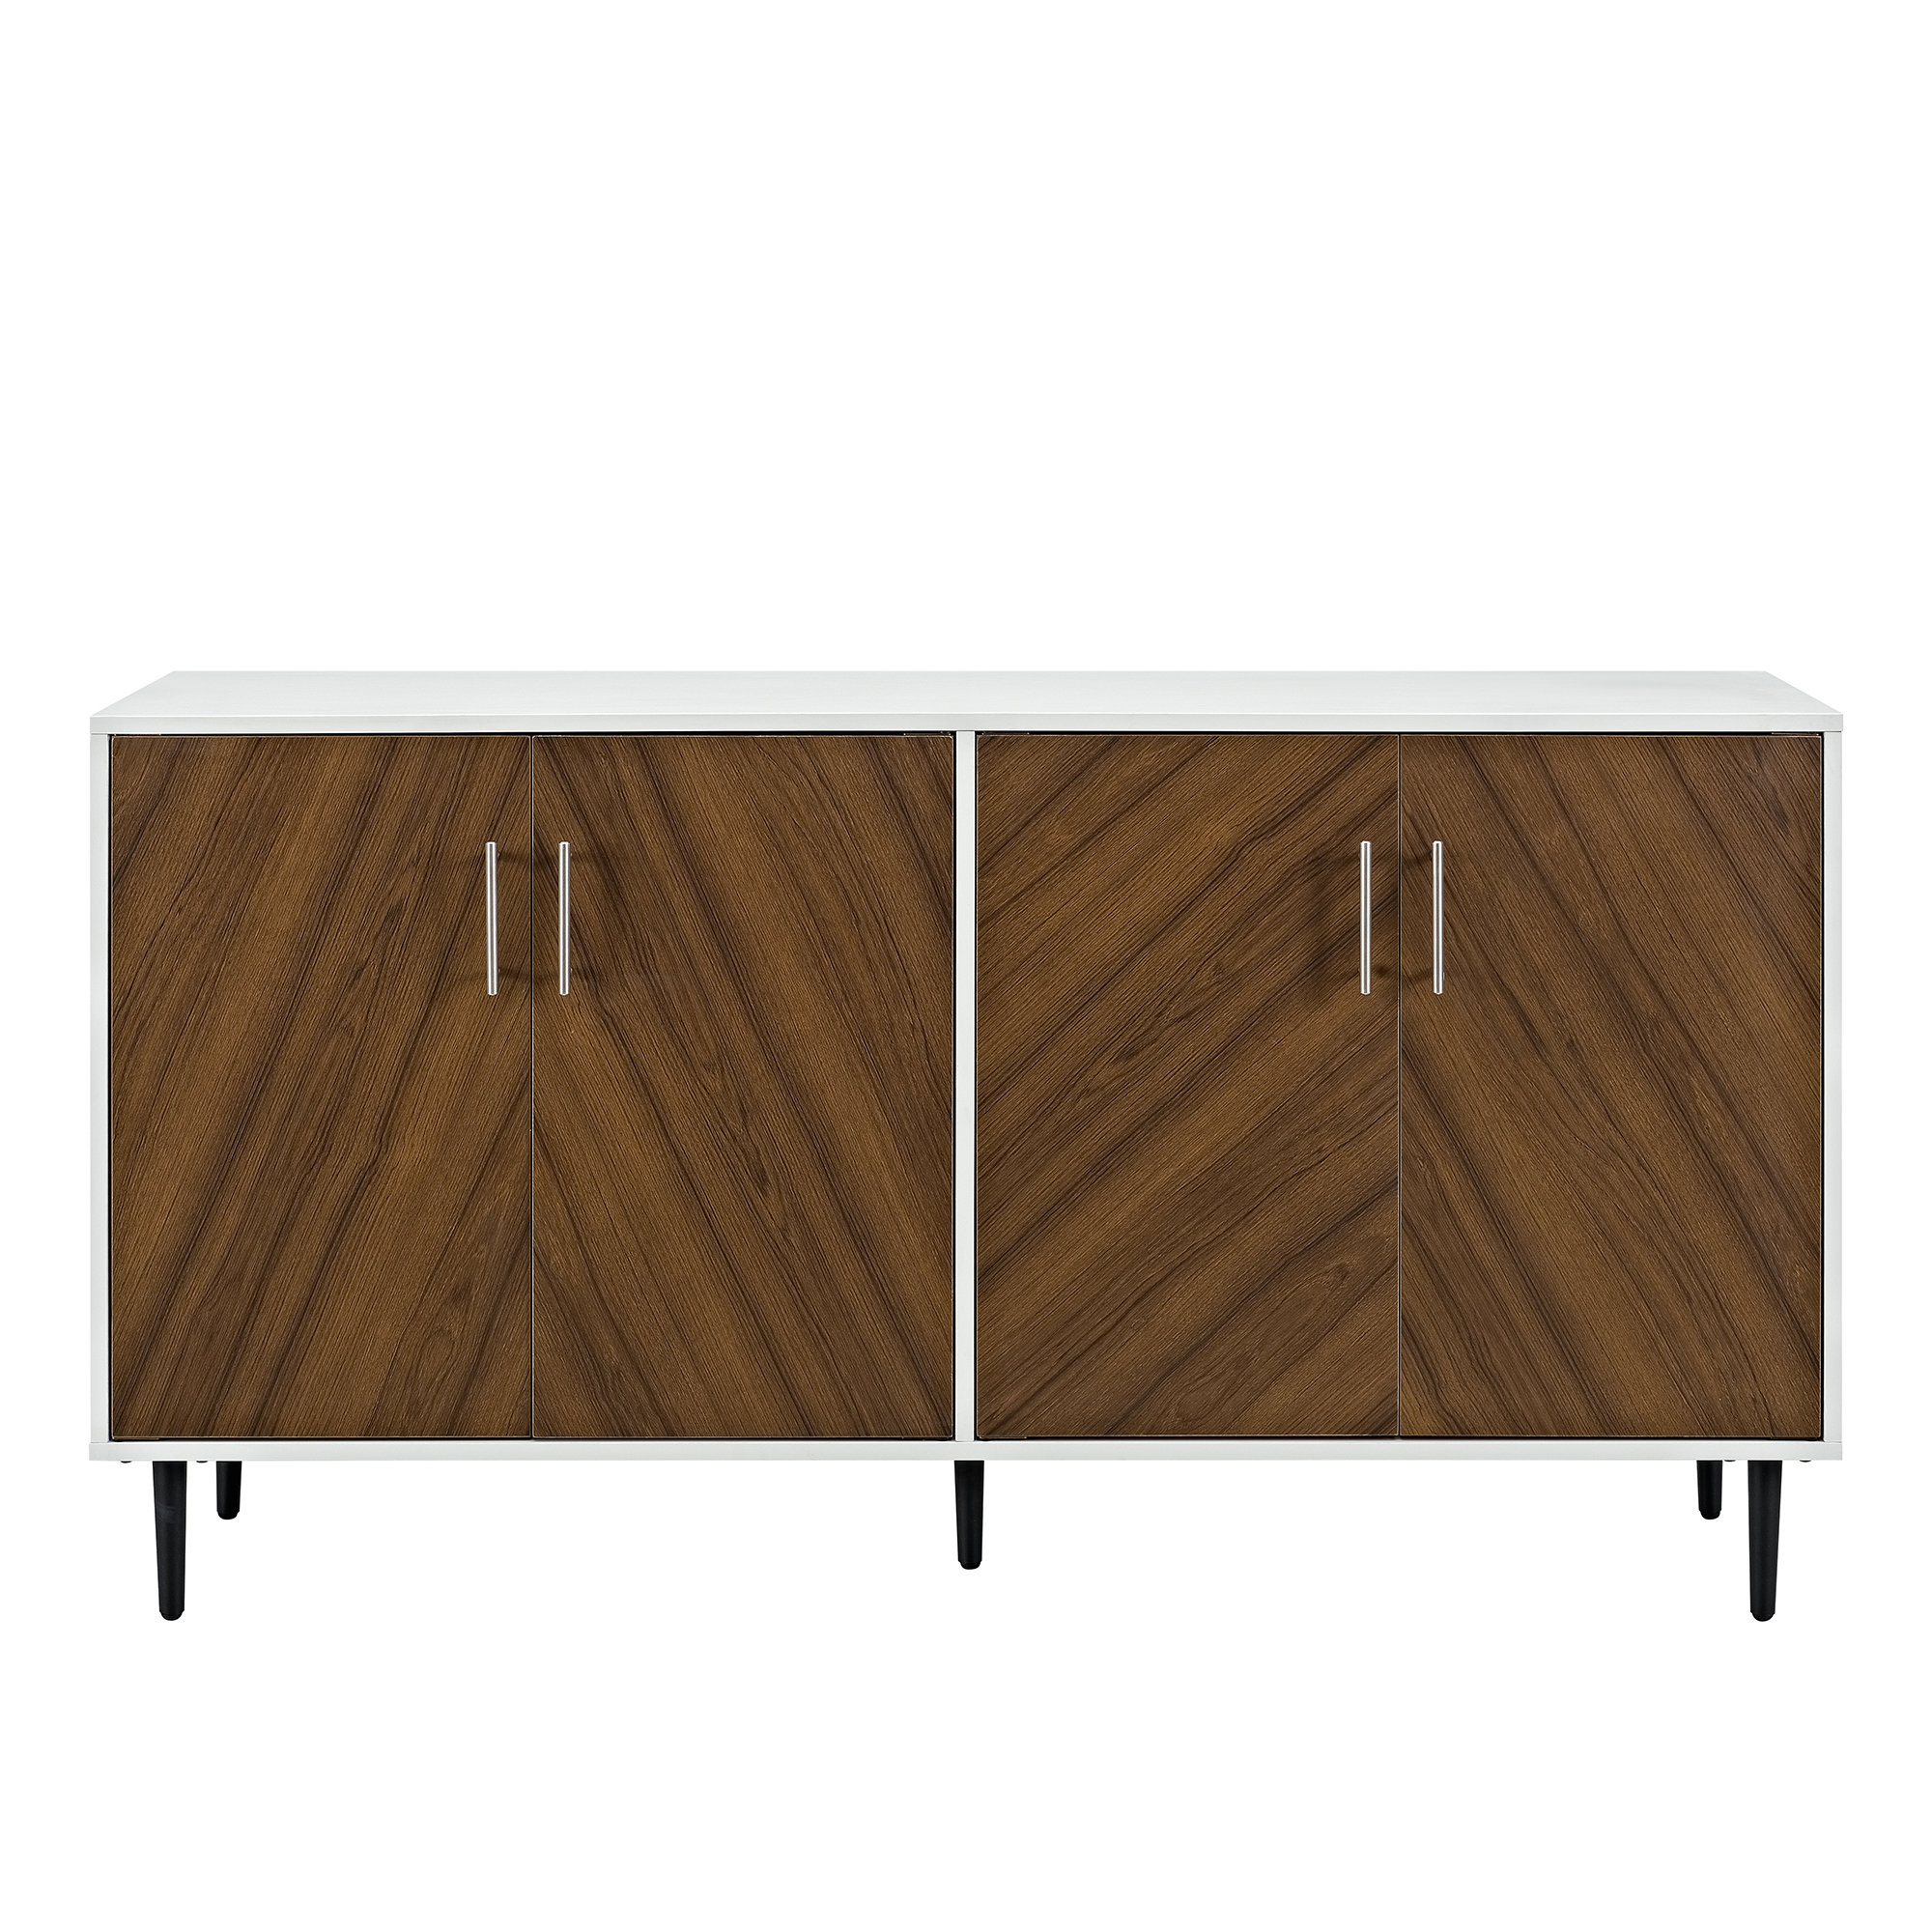 Keiko Modern Bookmatch Sideboard Intended For Solid Wood Contemporary Sideboards Buffets (View 12 of 30)